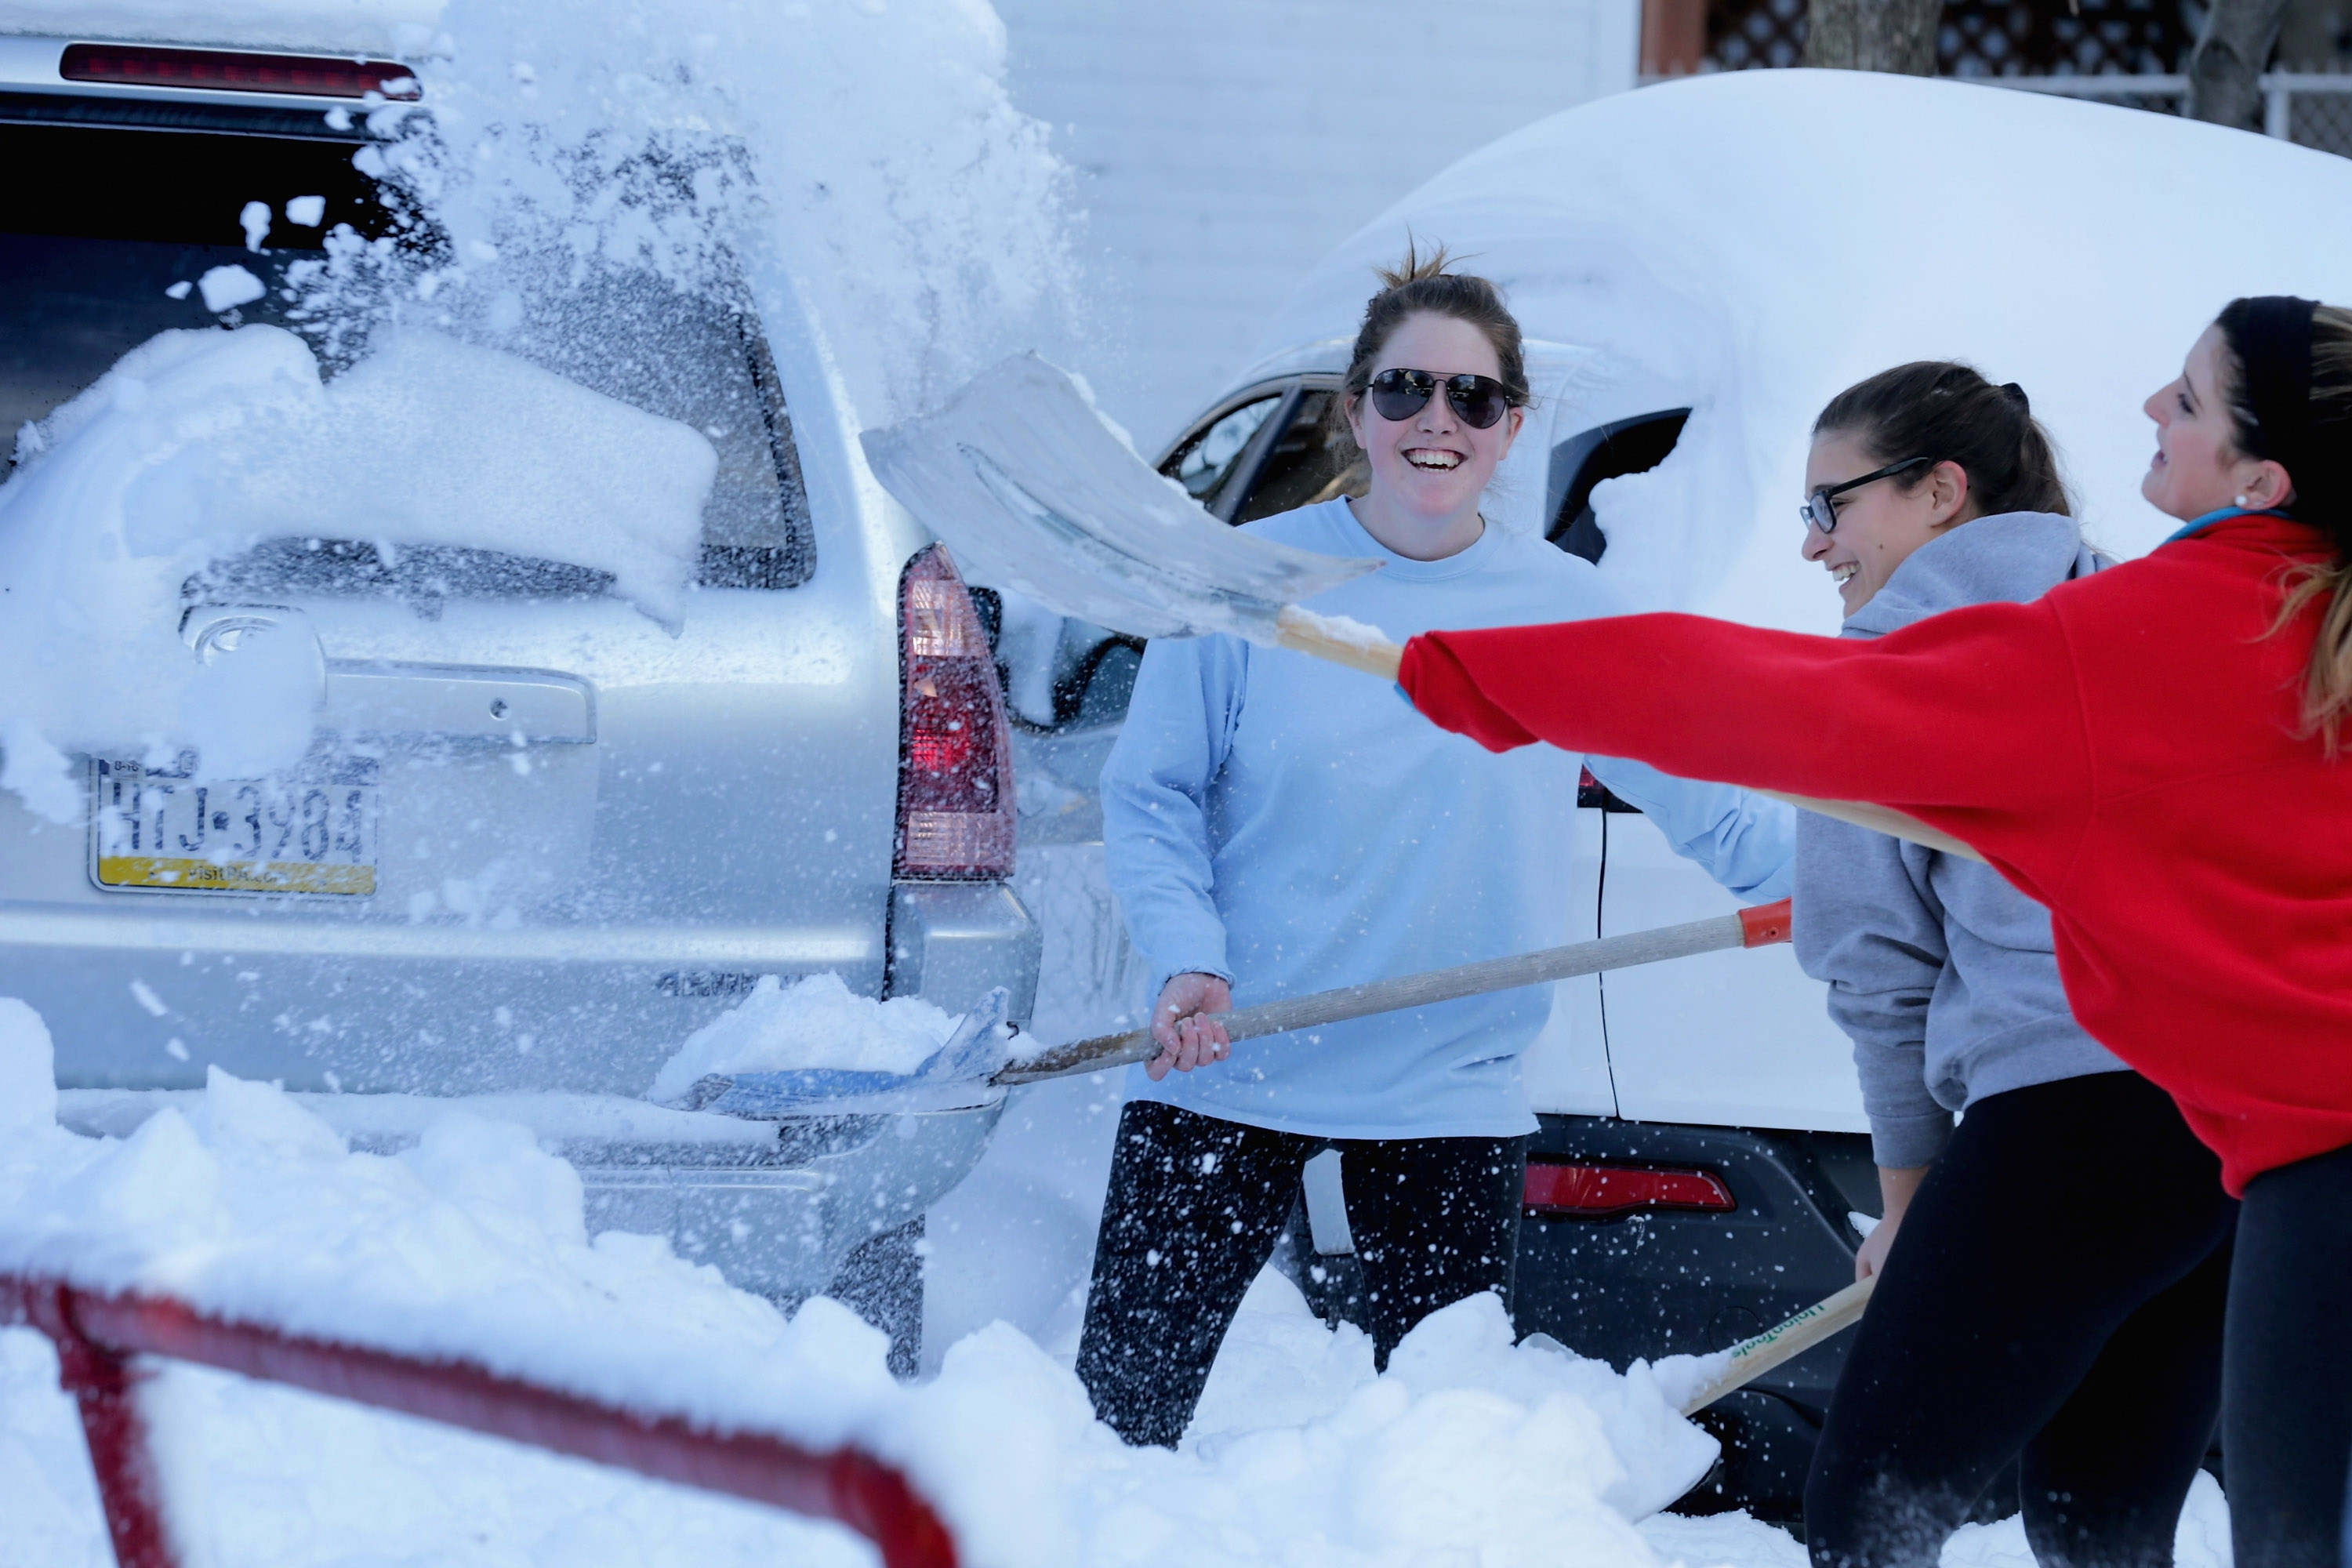 Catholic Unversity students shovel the parking lot behind their house in Washington, D.C., after Winter Storm Jonas covered the region with more than two feet of snow. (Getty Images)